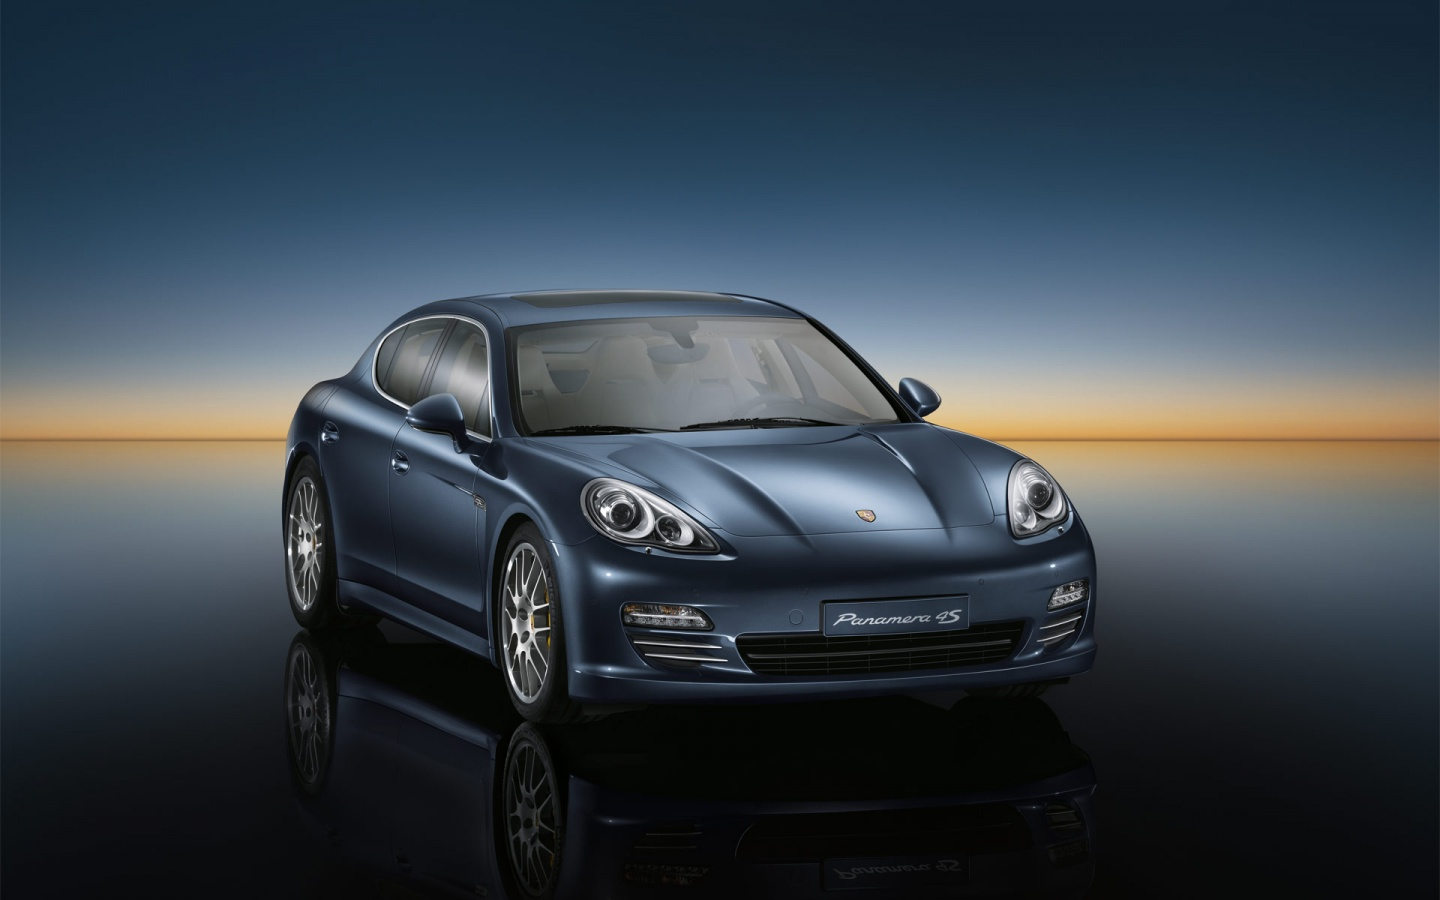 Porsche Panamera 4S Wallpaper HD Car Wallpapers 1440x900